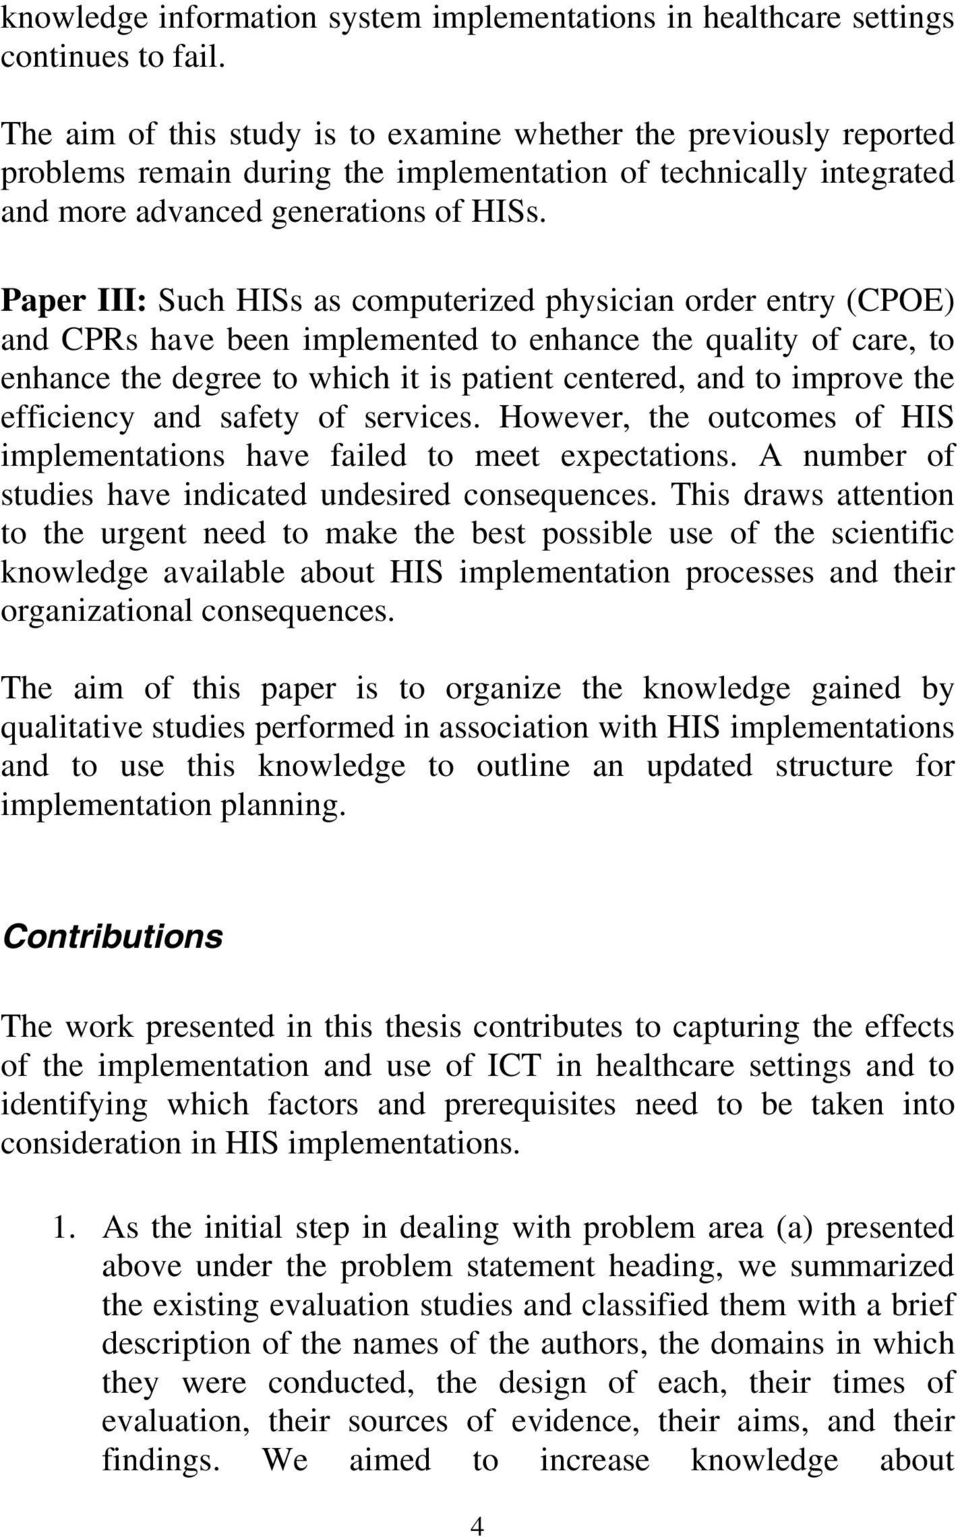 Paper III: Such HISs as computerized physician order entry (CPOE) and CPRs have been implemented to enhance the quality of care, to enhance the degree to which it is patient centered, and to improve